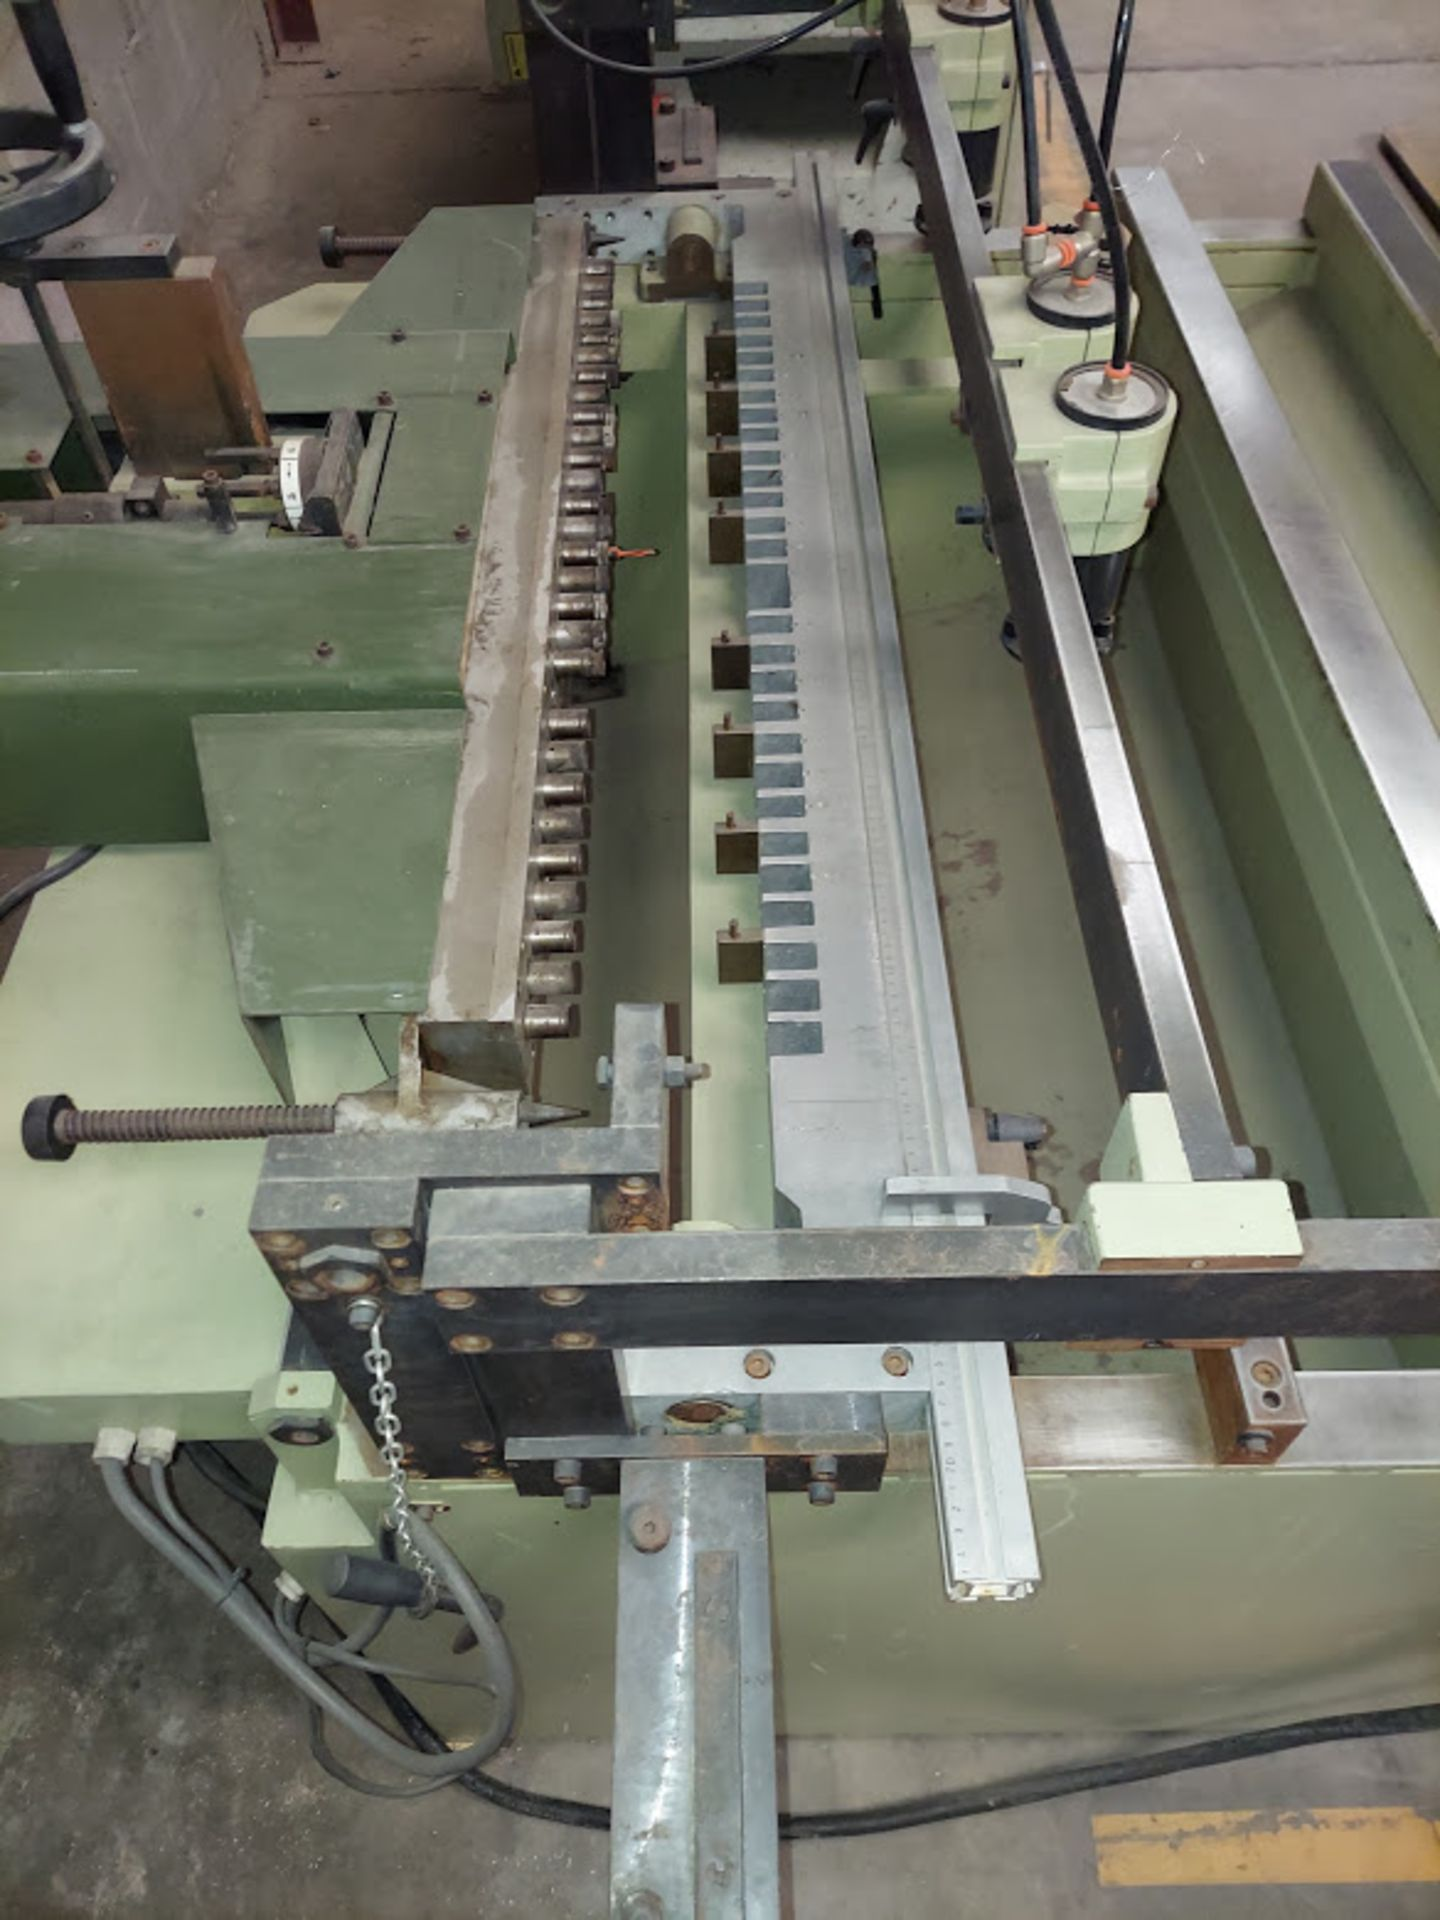 SCMI Construction Line Boring Machine, Model #MB29, 29 Spindles, 230 Volts 3 Phase - Image 2 of 6